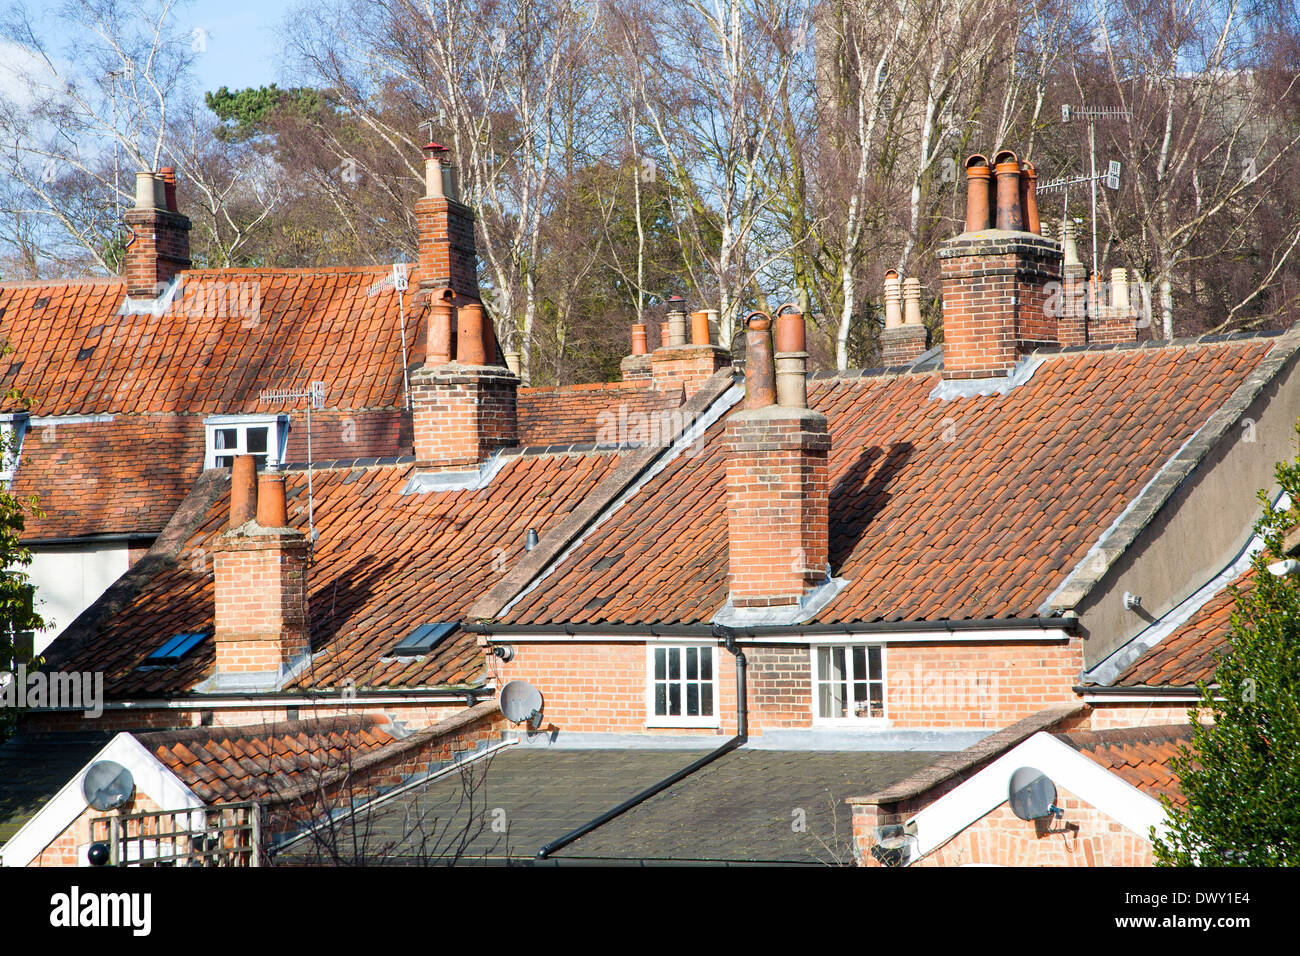 Chimney pots and pan tiled roofs in Woodbridge, Suffolk, England - Stock Image